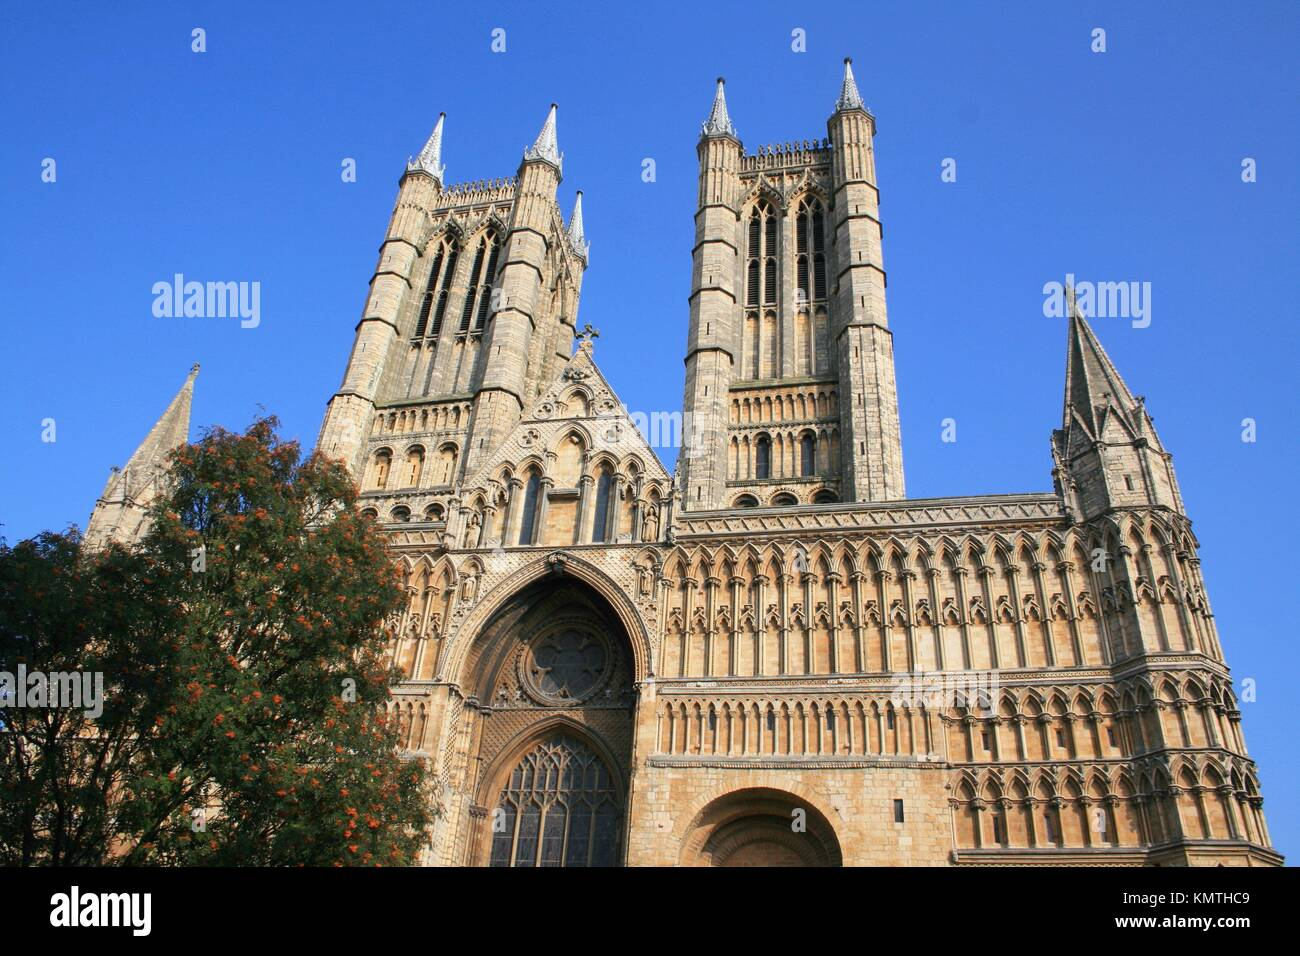 Lincoln Cathedral, Lincolnshire, the Midlands, UK - Stock Image